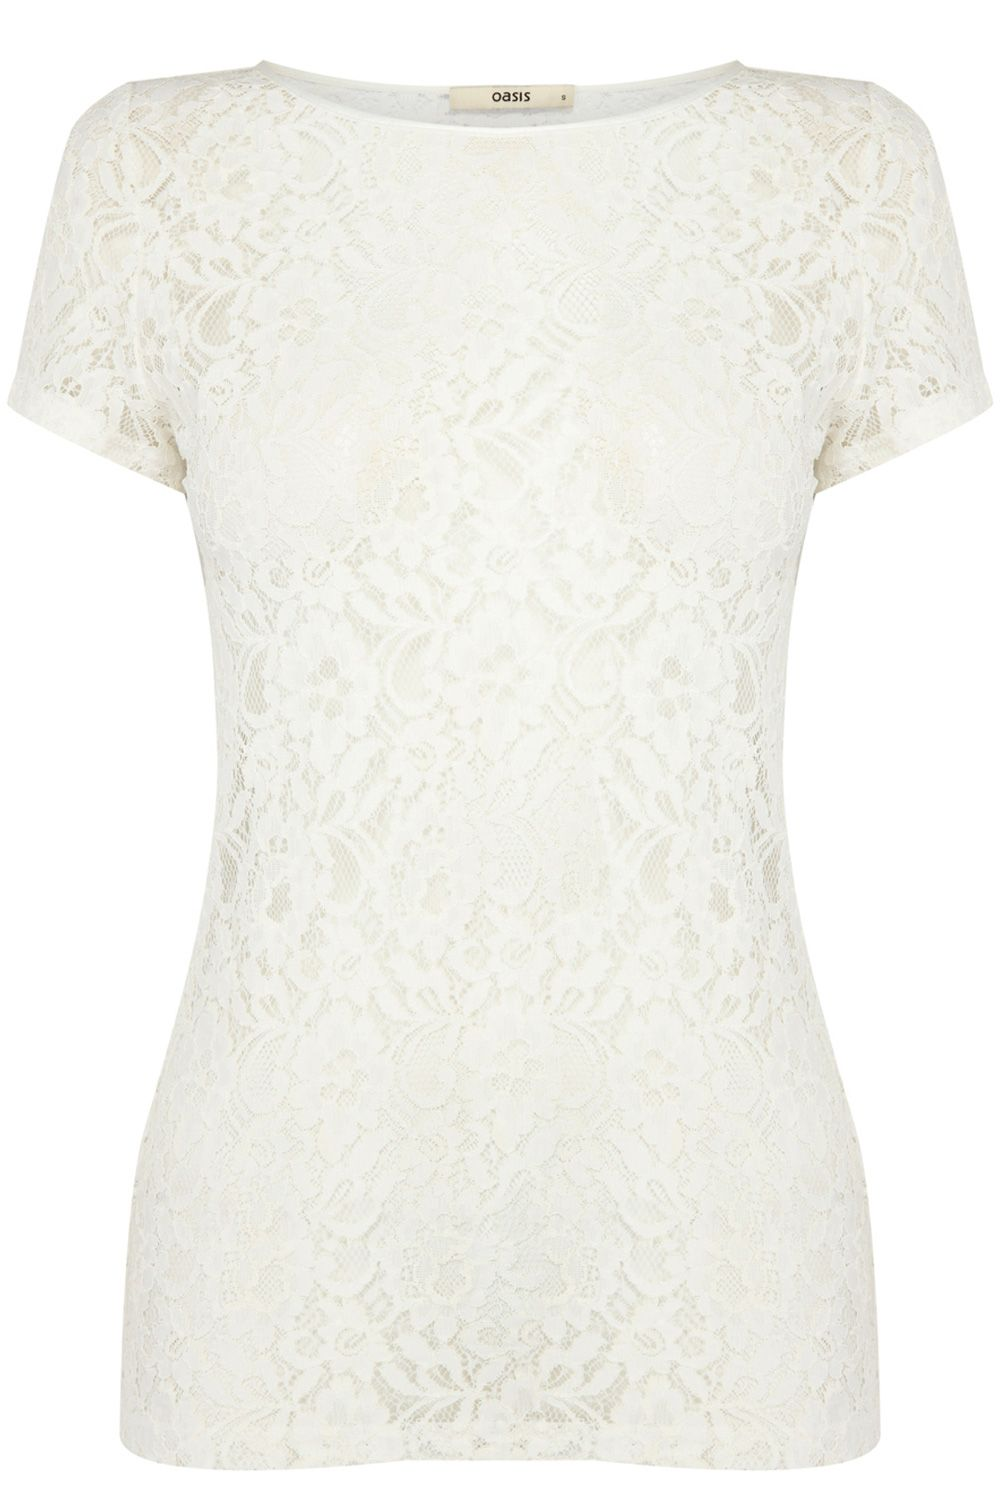 Lace short sleeve fitted tee